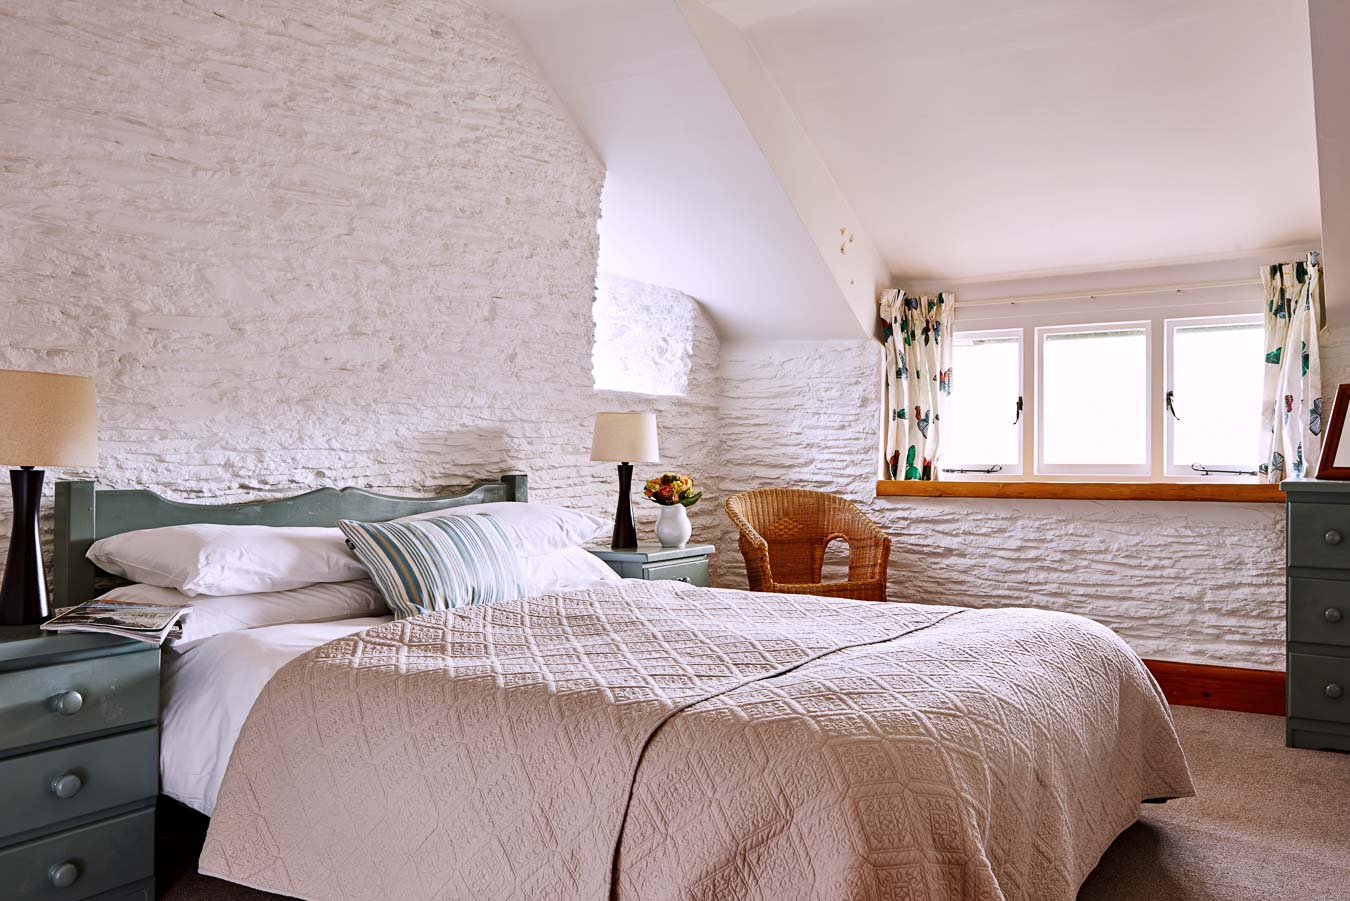 The large master bedroom in Quarry Cottage at Fiear Farm. With Kingsize bed and built in wardrobes the windows overlook the trees and valley beyond.